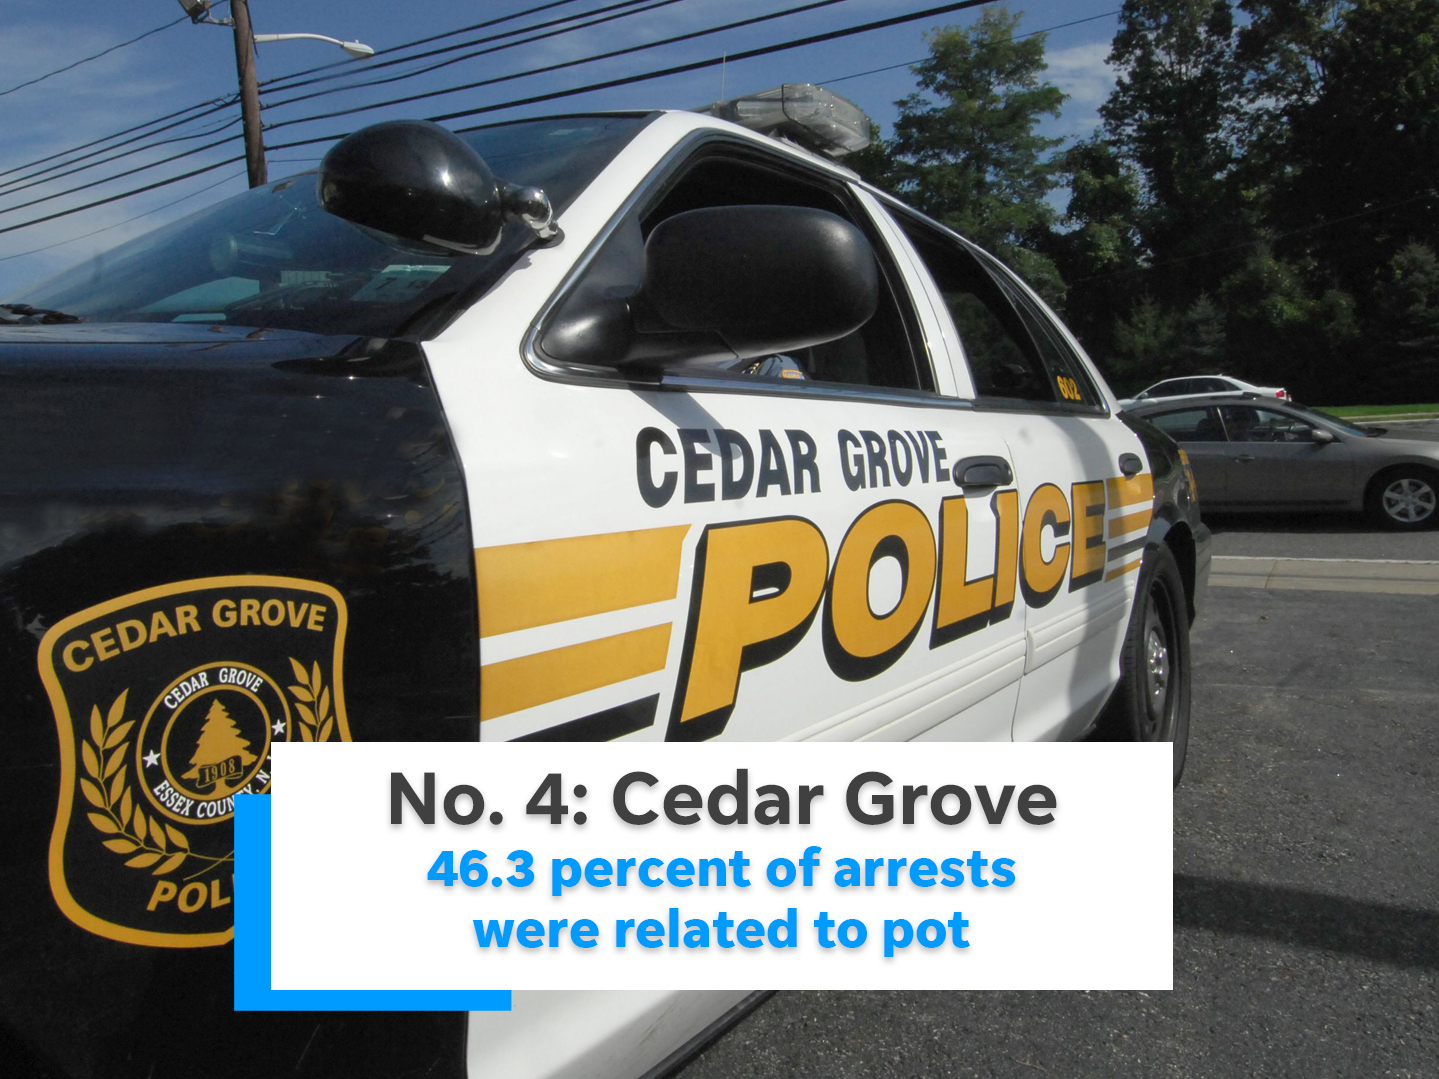 46.3 percent of Cedar Grove's arrests were related to marijuana.